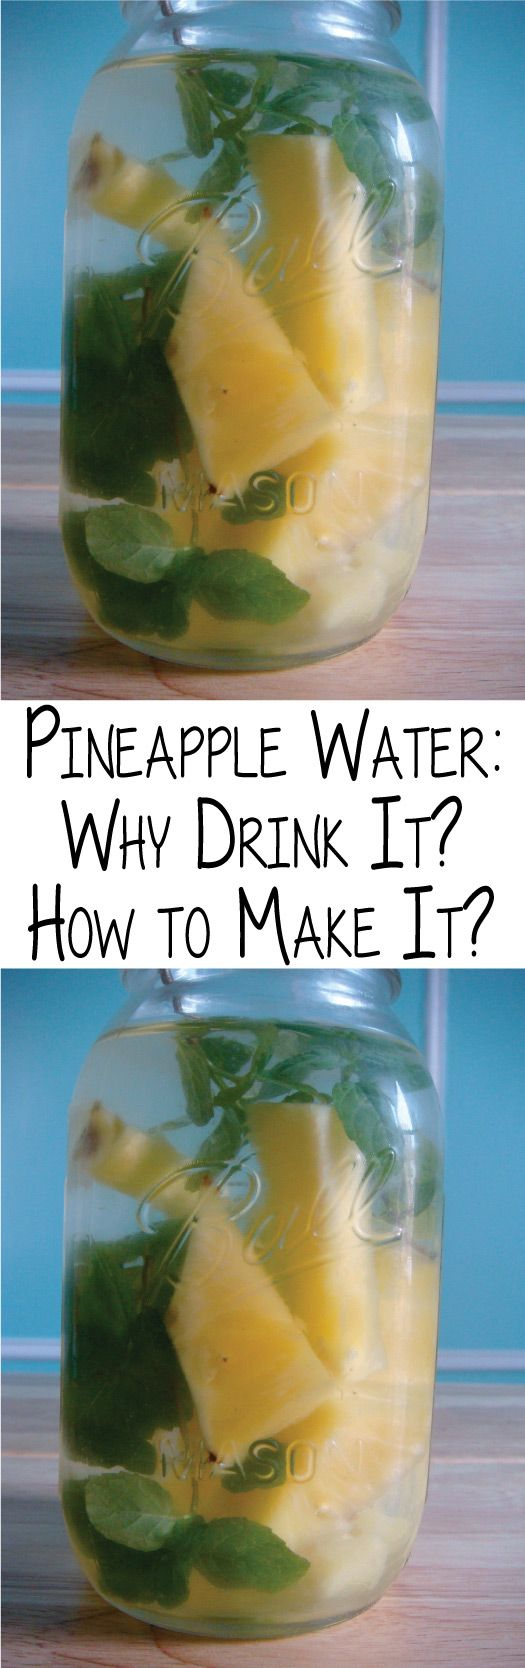 I'm sure most of you are familiar with lemon water. And I know most of you know that you need to drink 8oz of water per day (at least that's the gold standard). Lemon water is arguably the best beverage you can get in the morning. But don't underestimate pineapple water.